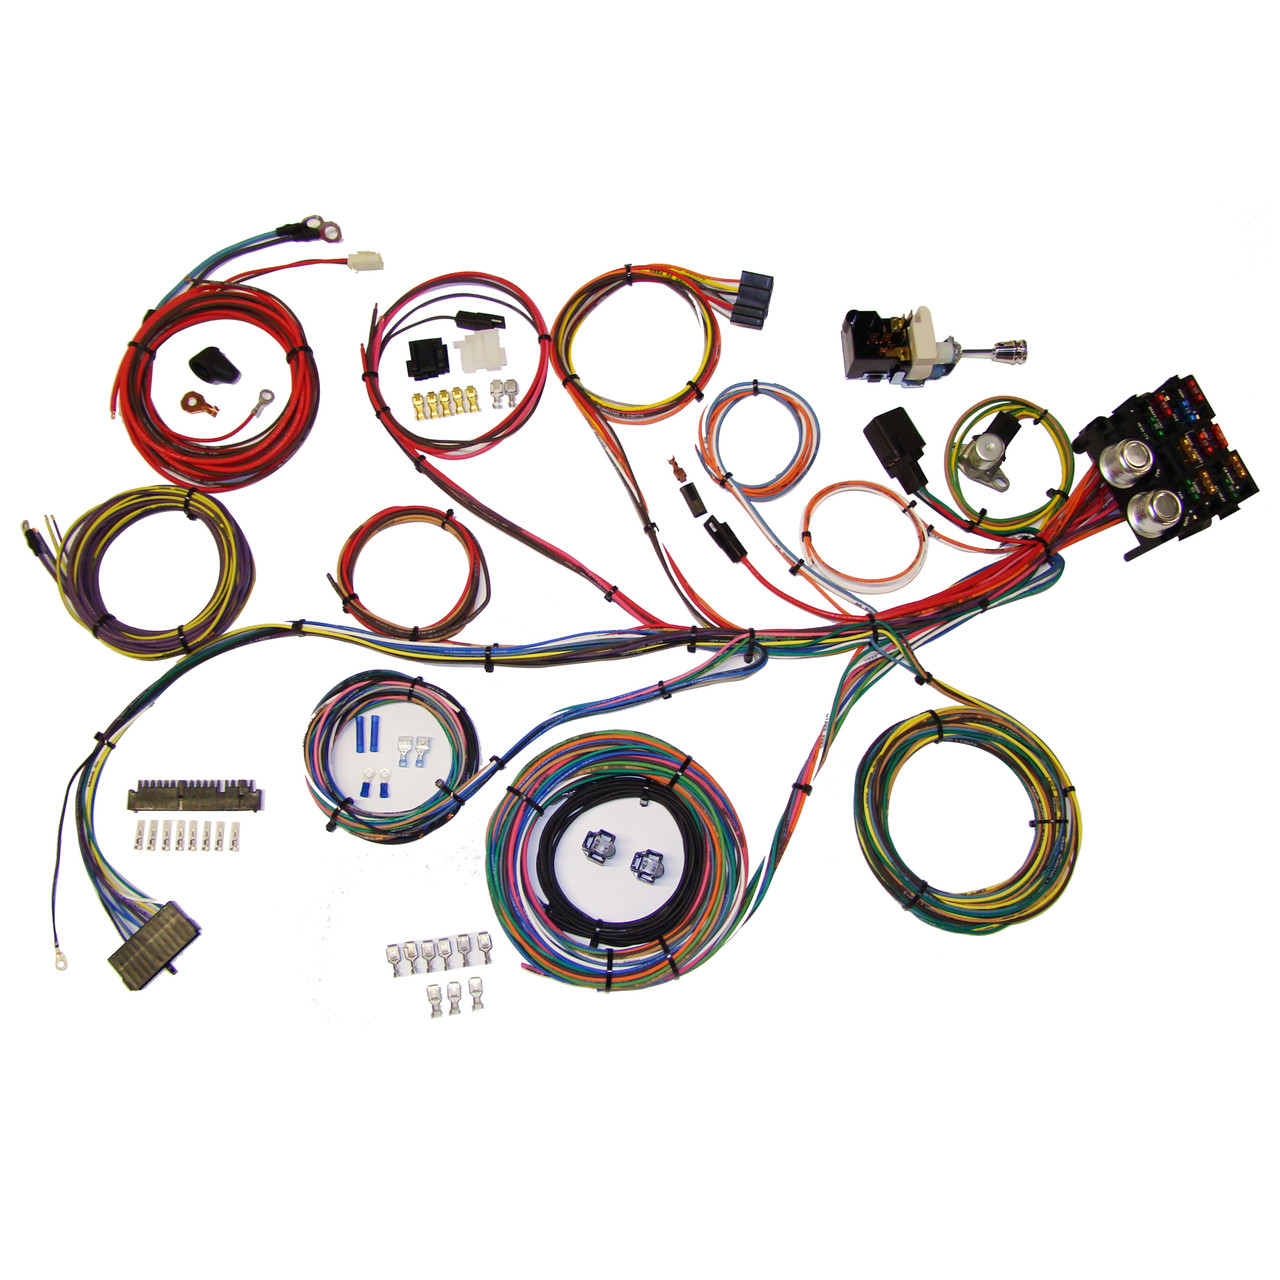 hight resolution of autowire builder 19 kit 510006 street rod hot universal wiring autowire builder 19 kit 510006 street rod hot universal wiring harness